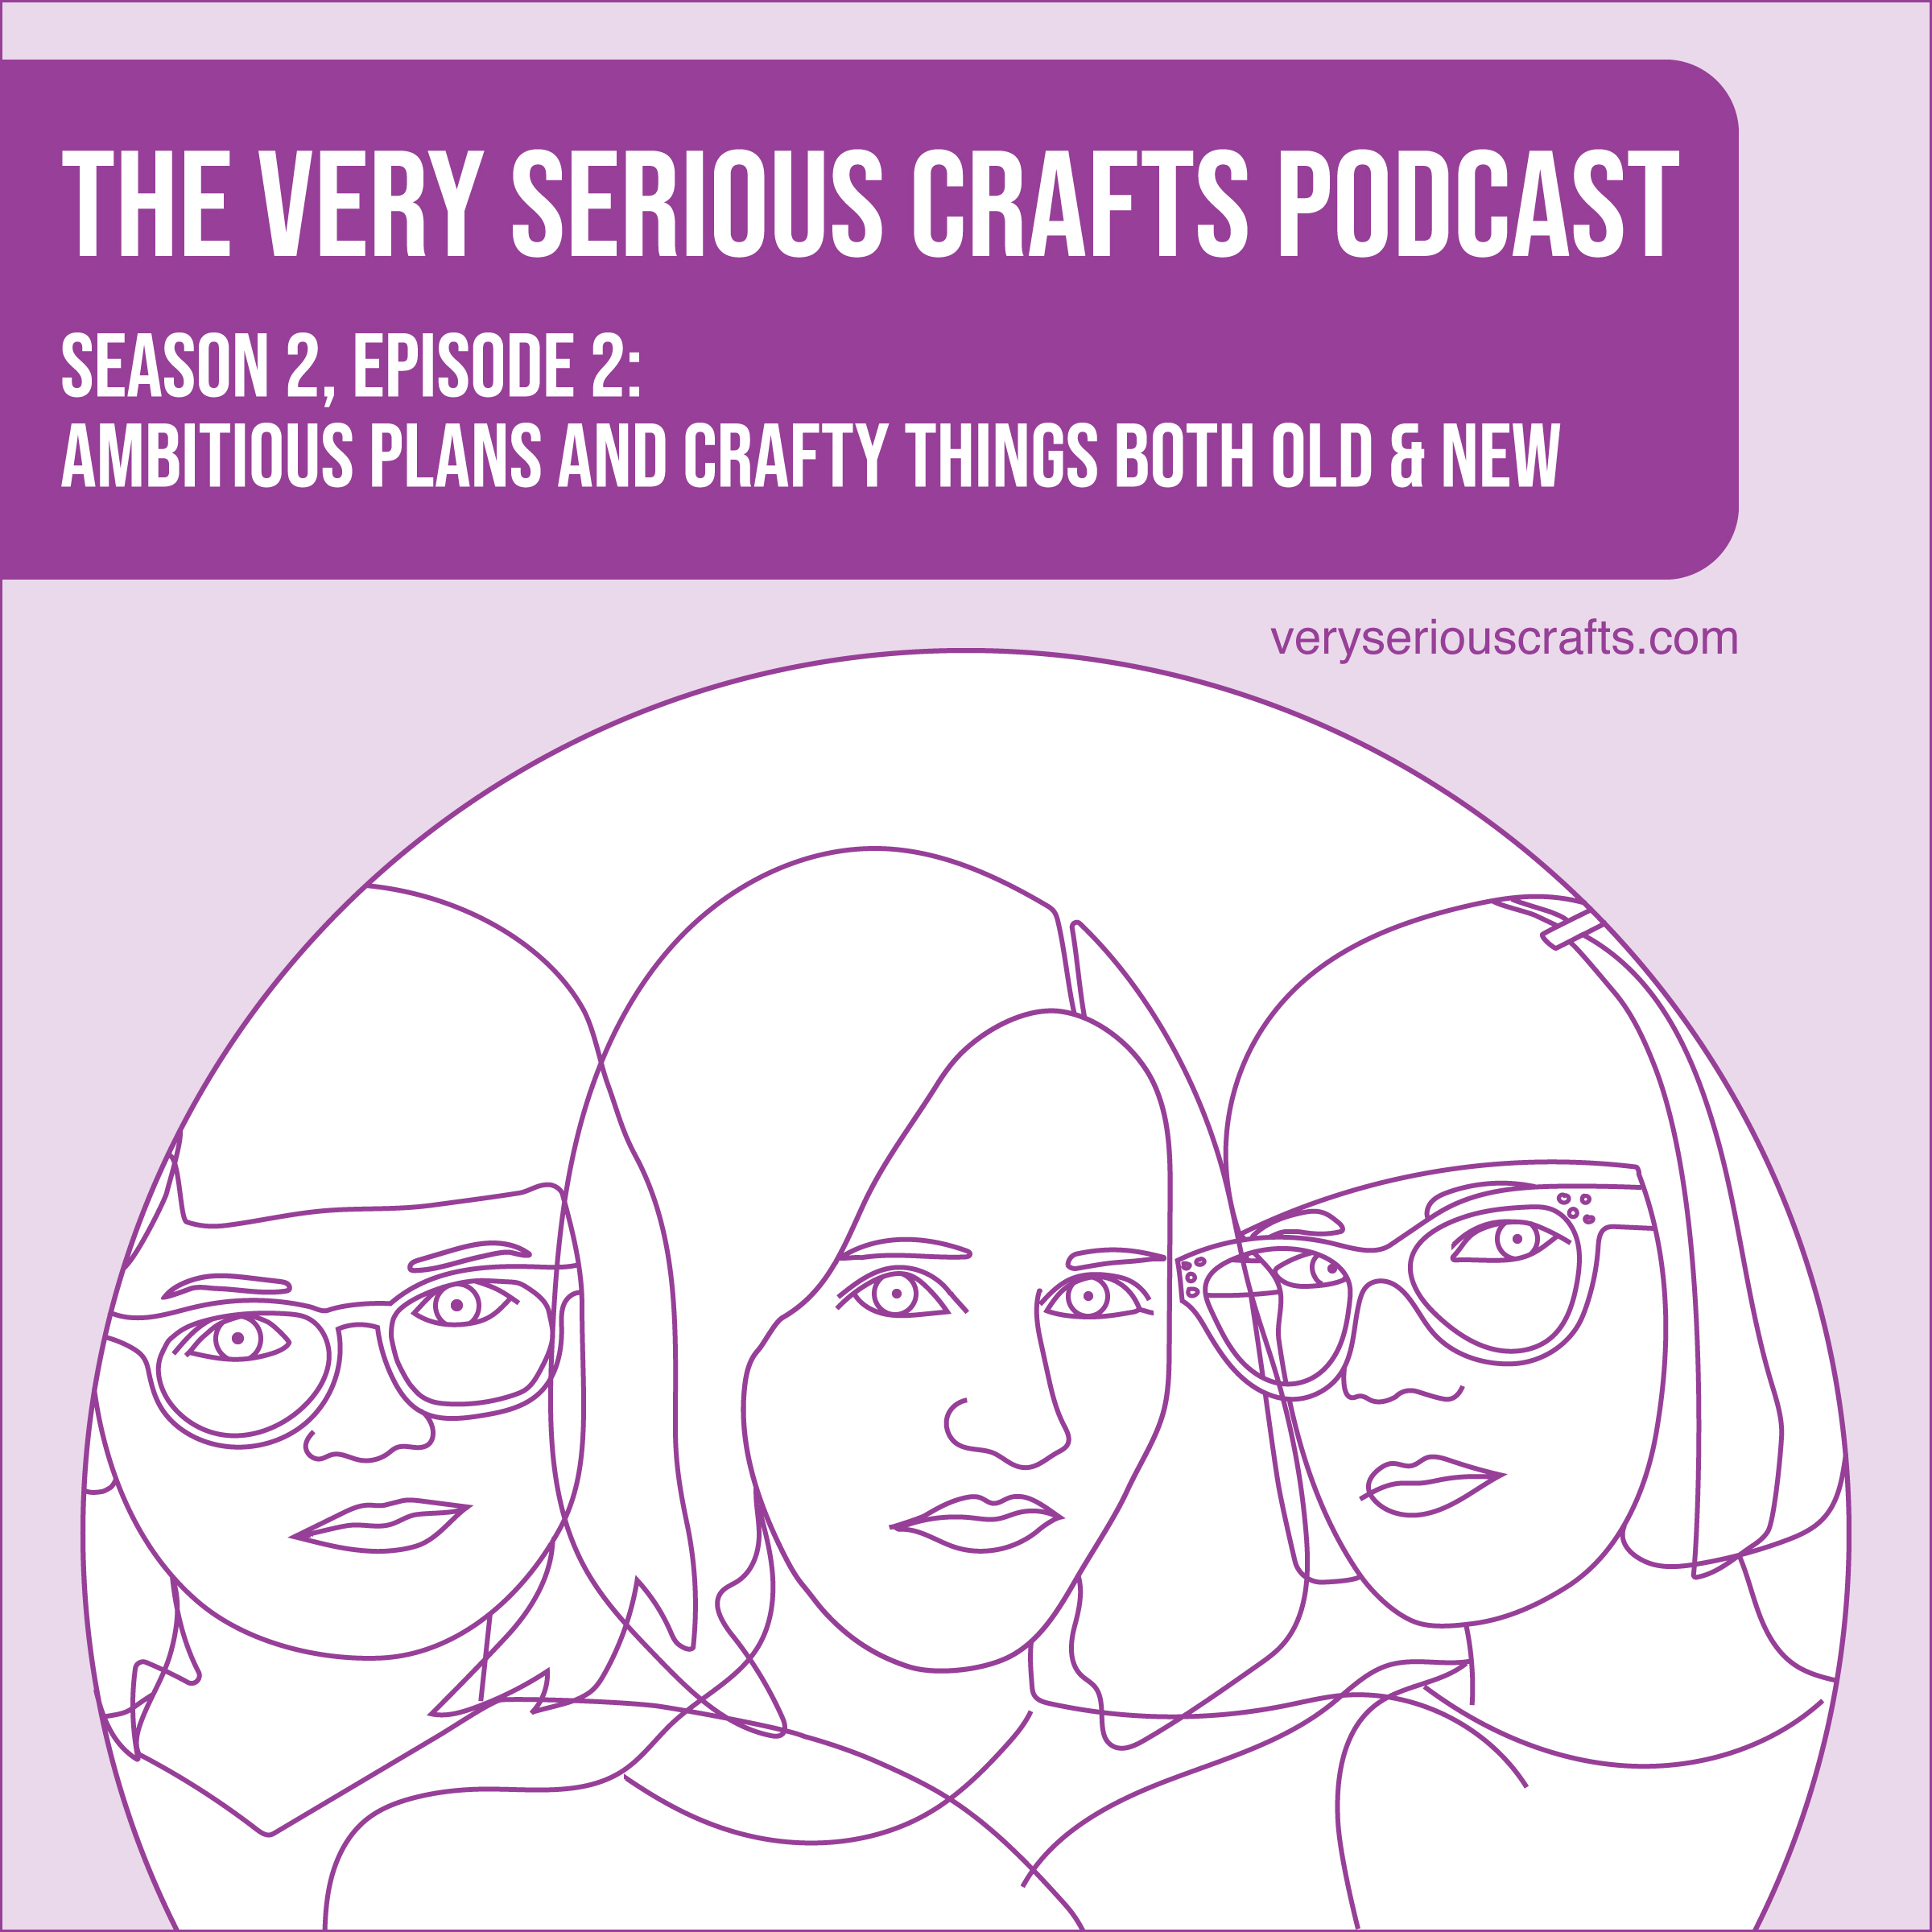 S2E02: Ambitious Plans and Crafty Things Both Old & New